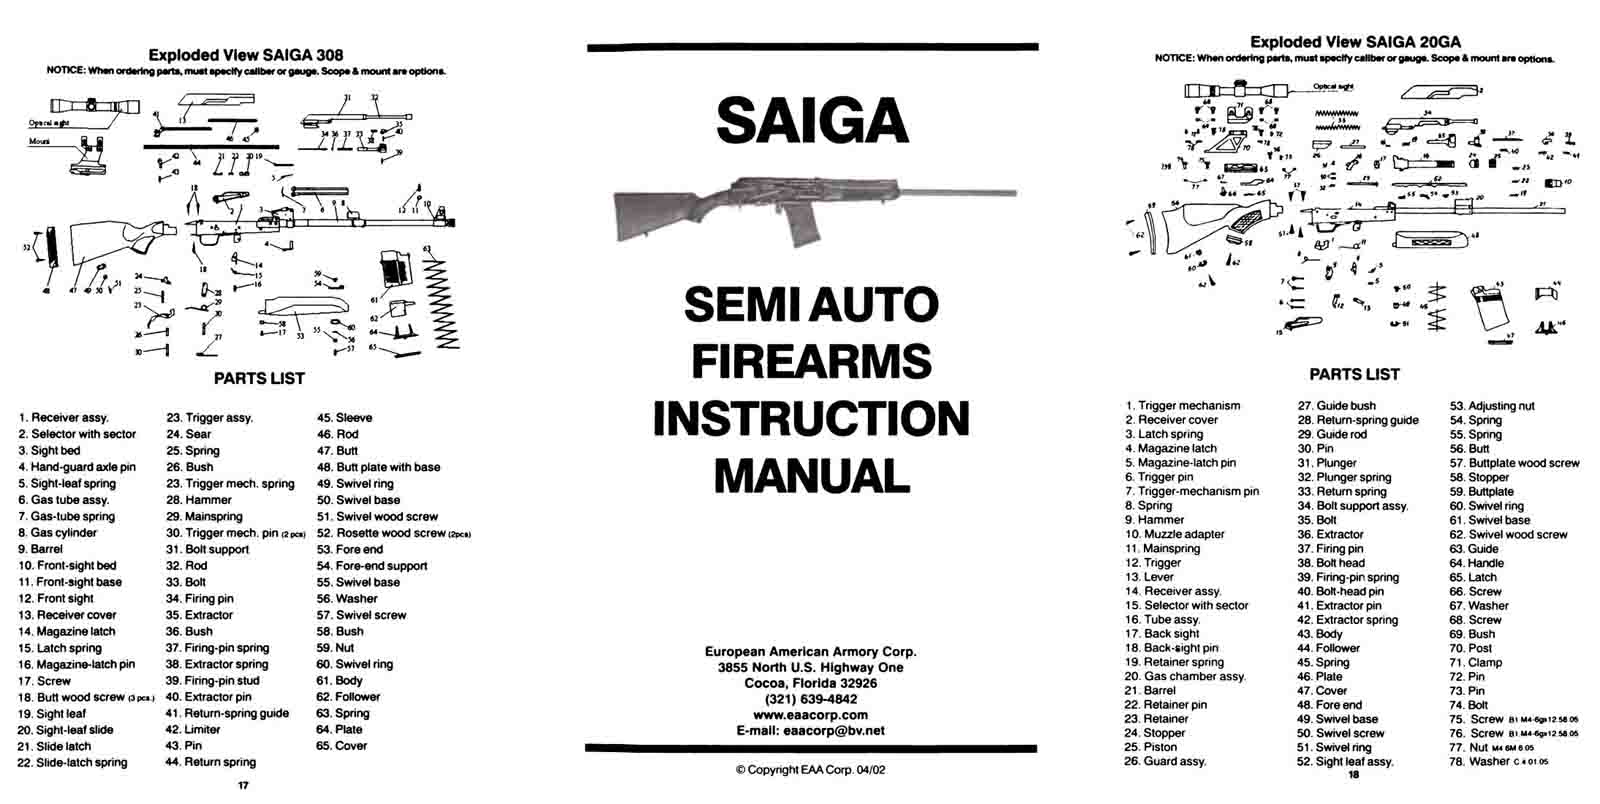 Cornell Publications LLC | Old Gun Manuals - featuring Sabatti ...